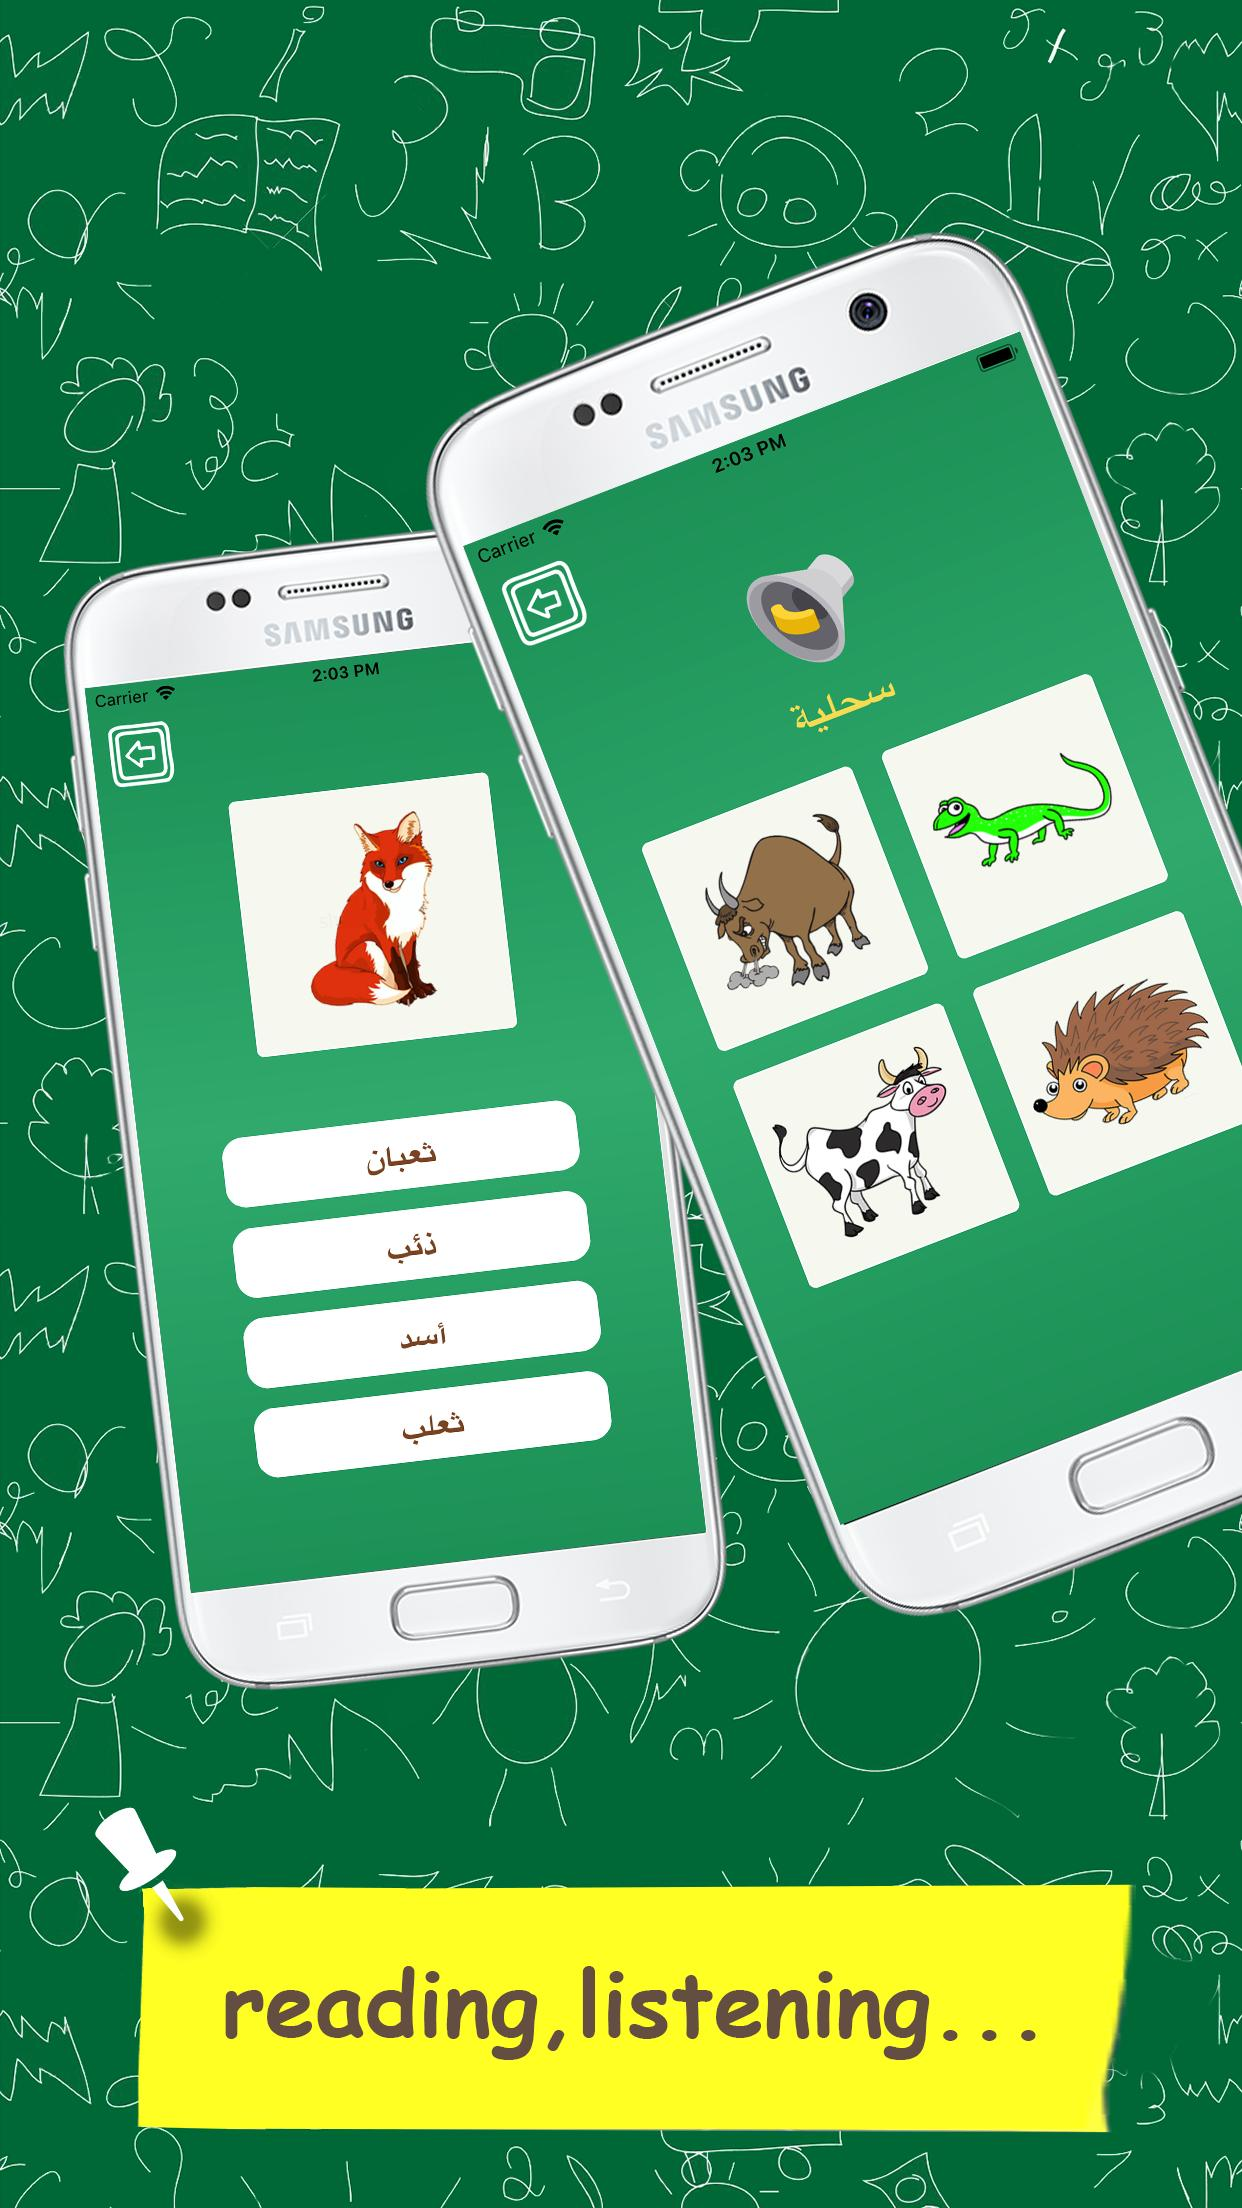 Learn Arabic Vocabulary - Kids 1.0.4 Screenshot 4